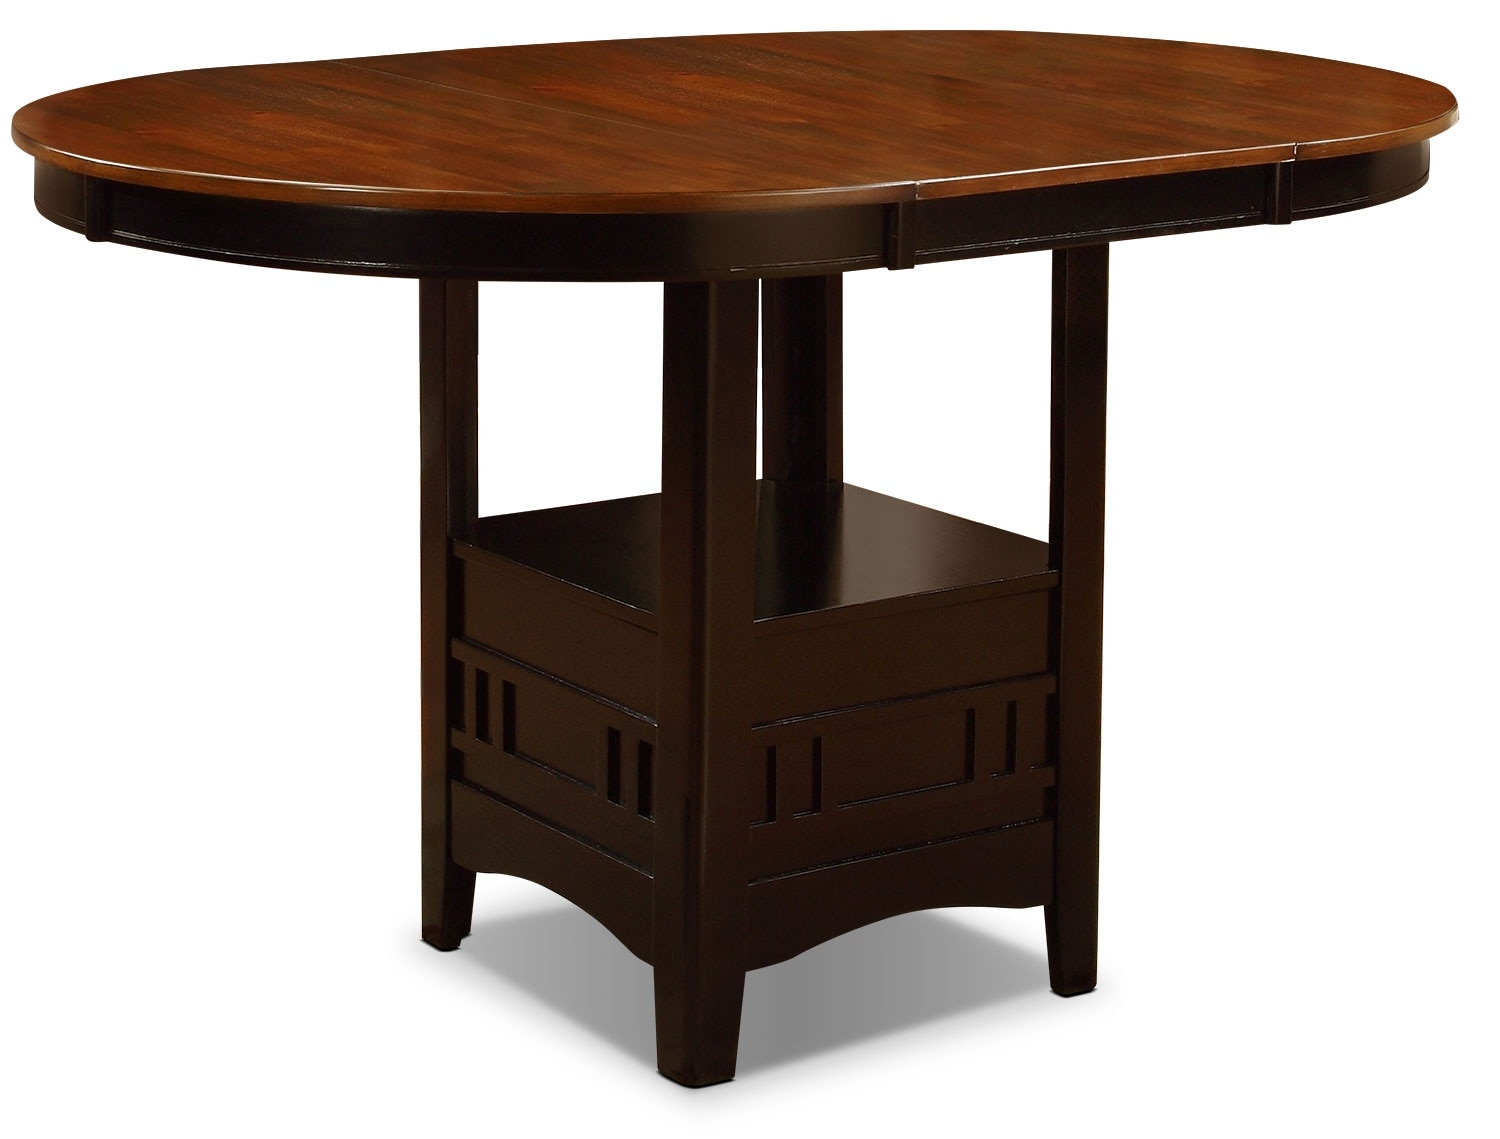 Dining Room Furniture - Dara Counter-Height Dining Table